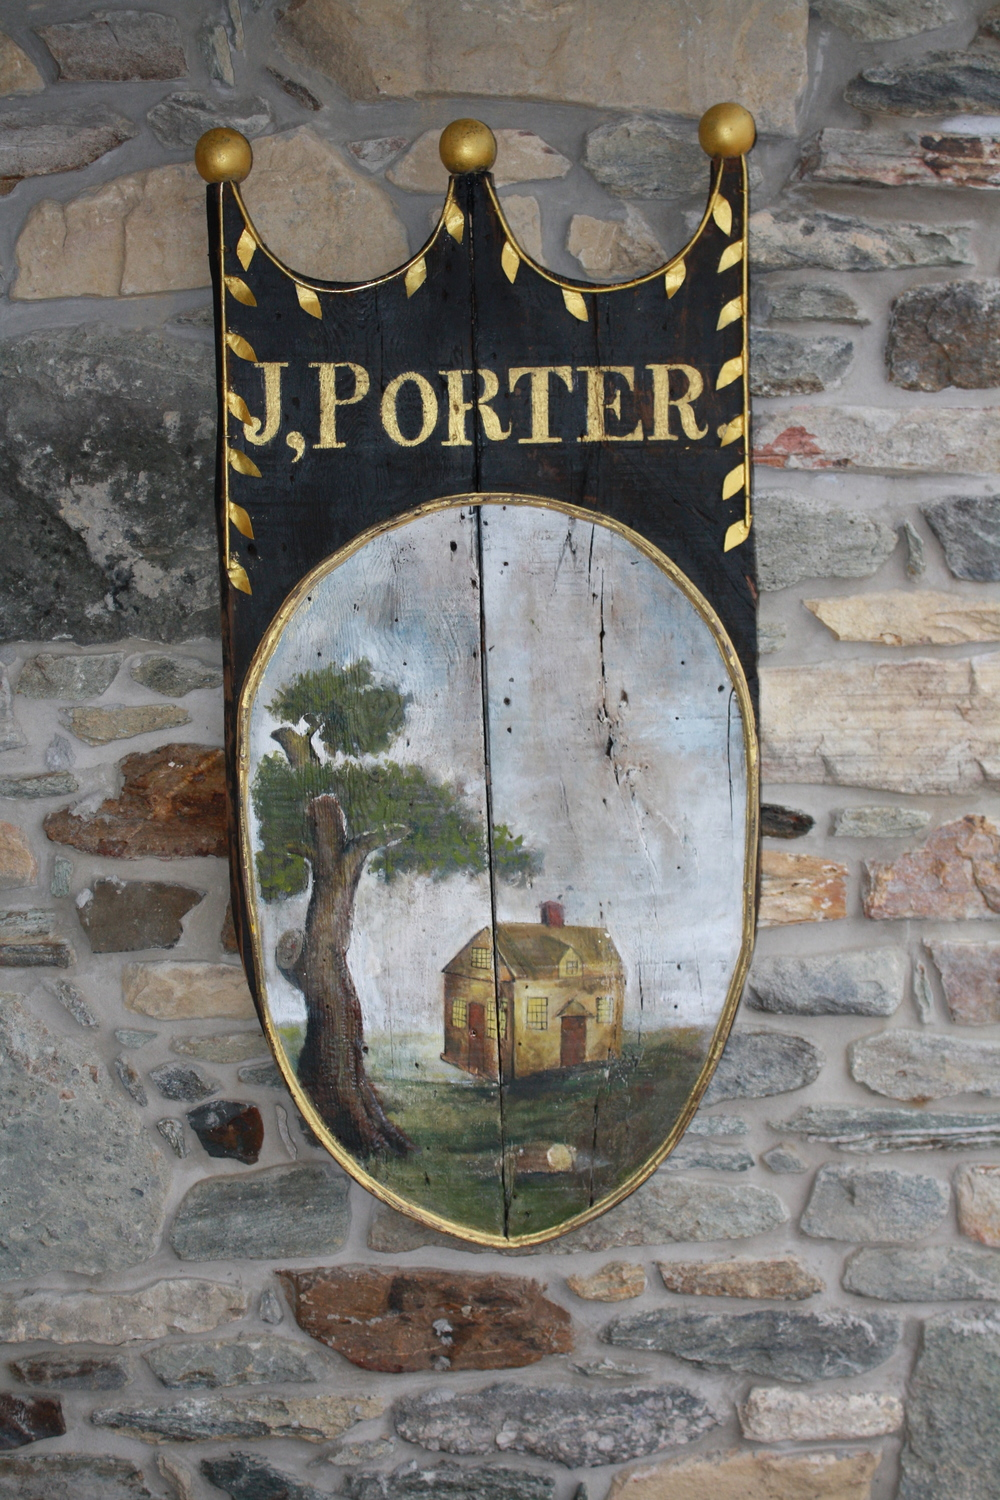 Sign for J. Porter's Inn